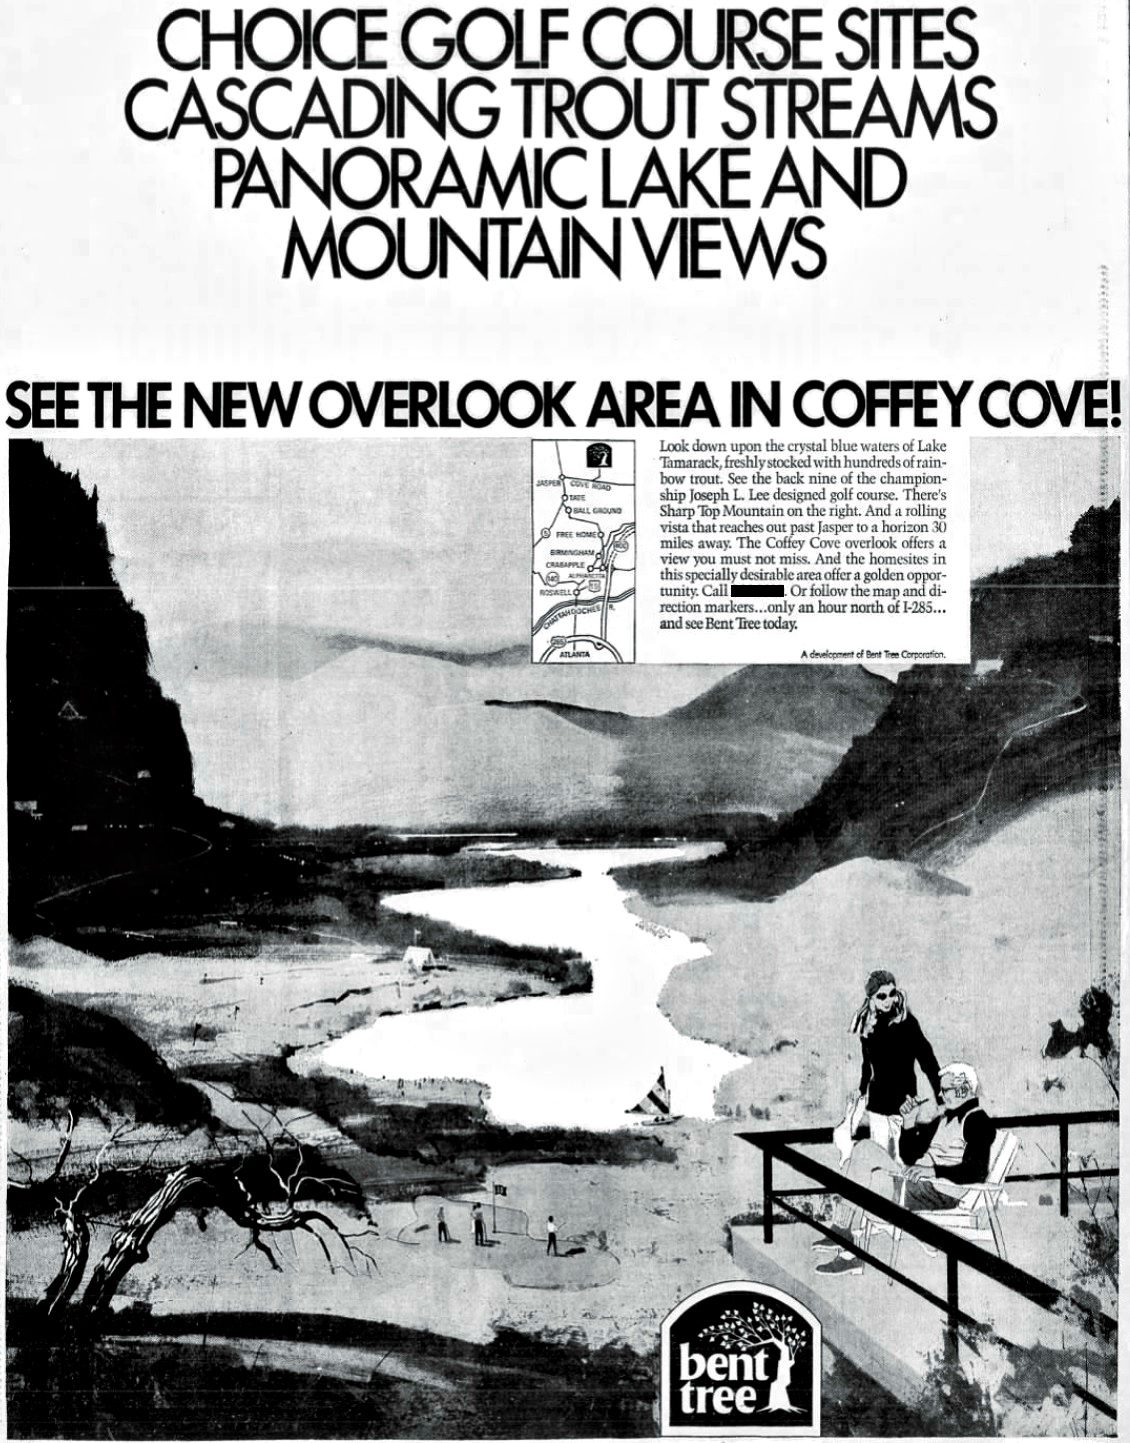 February 1972 advertisement for Bent Tree